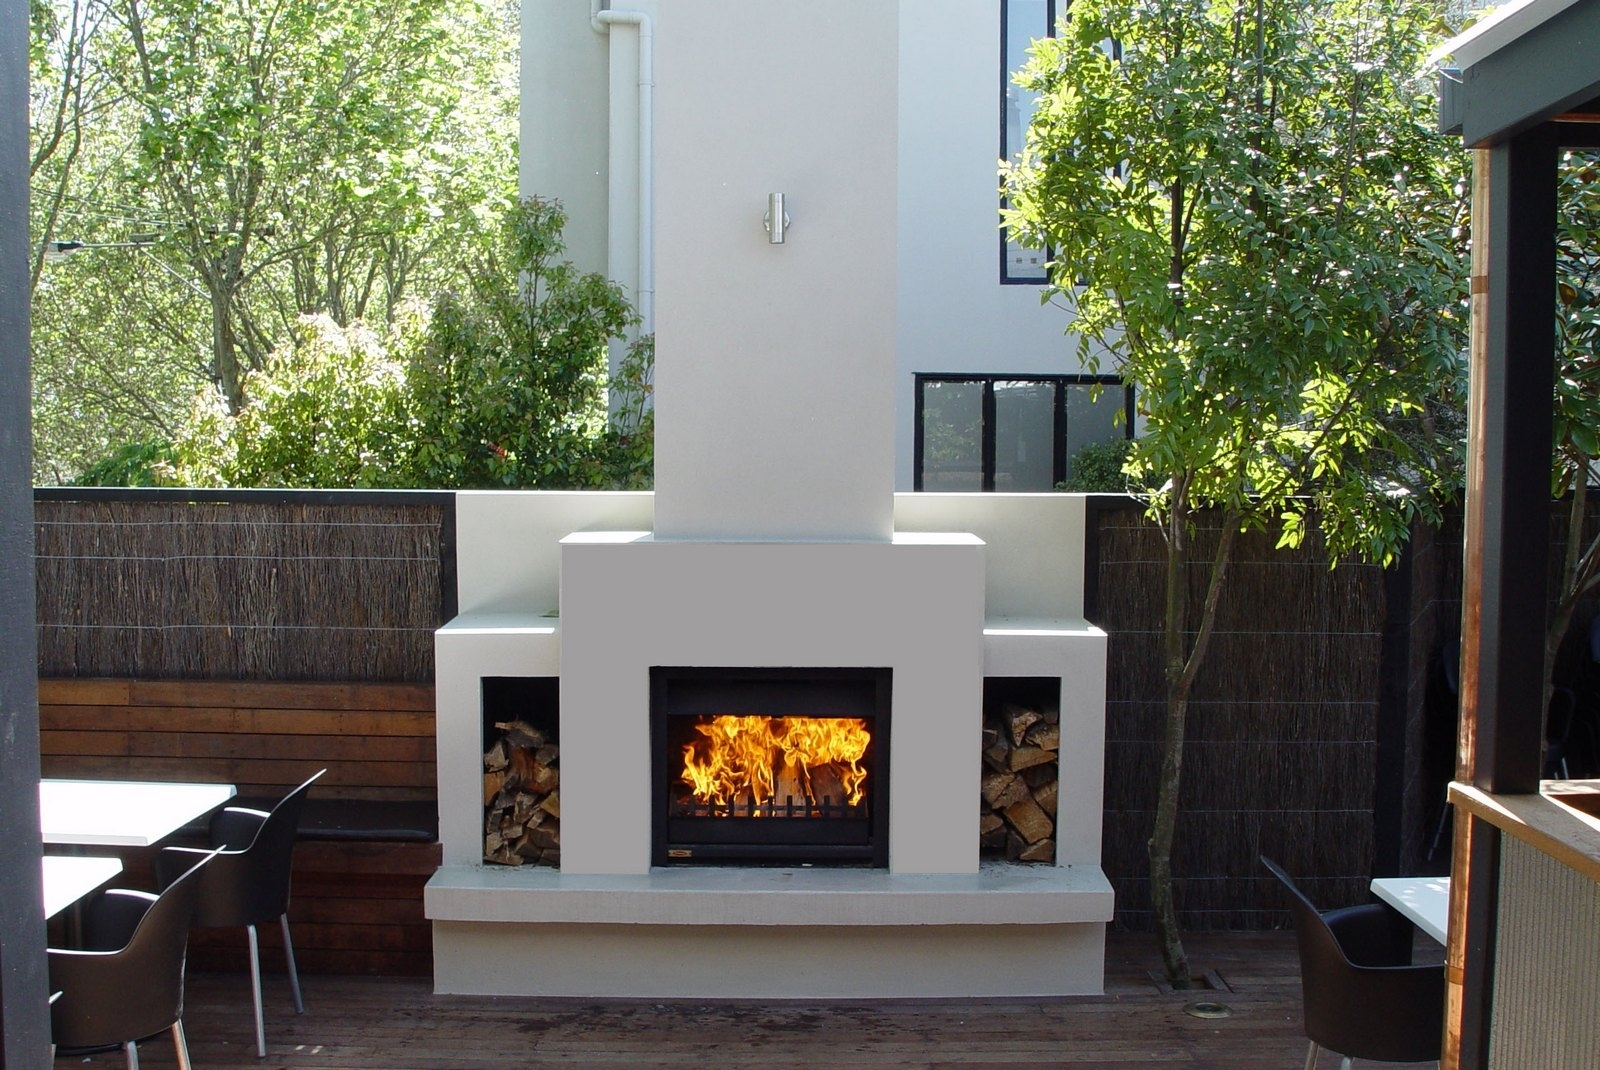 Image of: Jetmaster Universal Wood Fireplace Corner In Outdoor Wood Fireplace Design Outdoor Wood Fireplace Designs